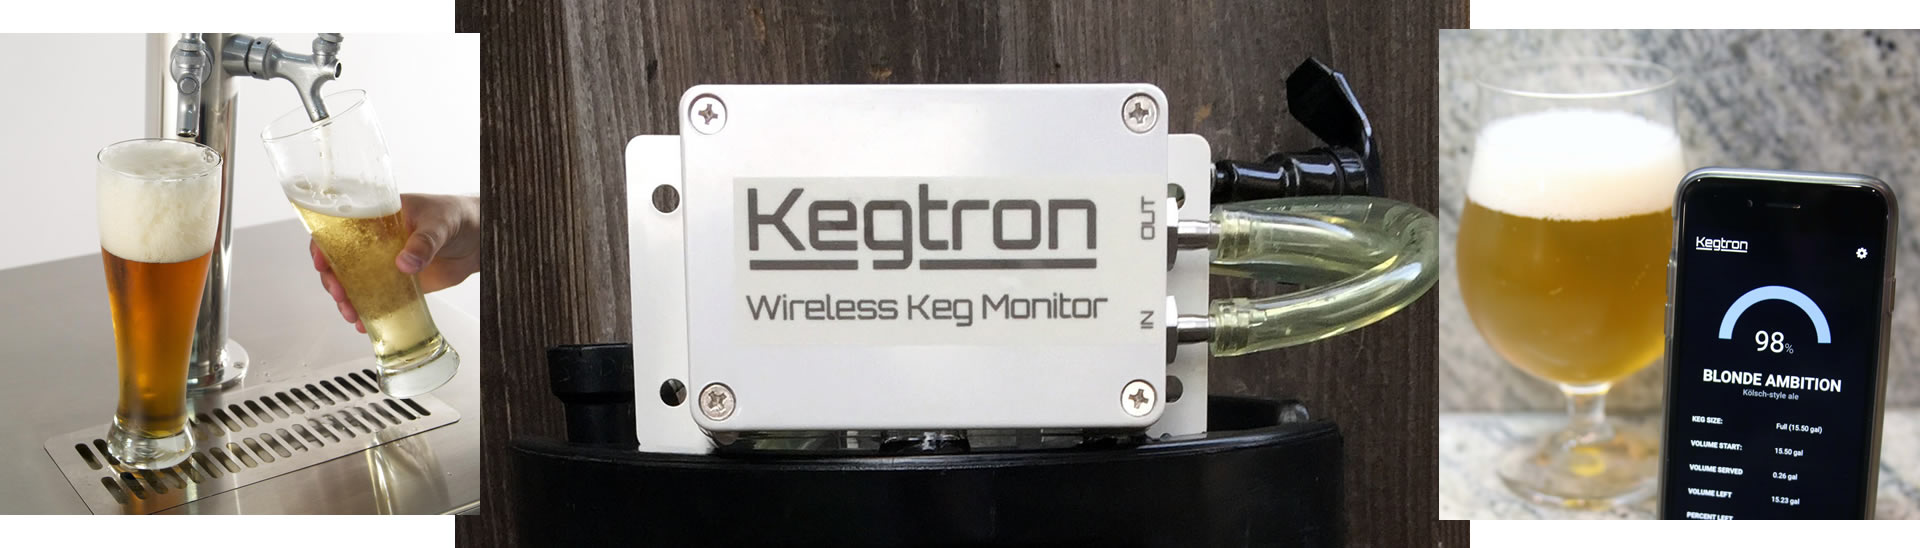 Kegerator Blog Control Panel Question Home Brew Forums Kegtron And Brewskey Both Make Installation Very Simple Have Some Cool Features That Set Them Apart From Each Other I Got A First Look At The